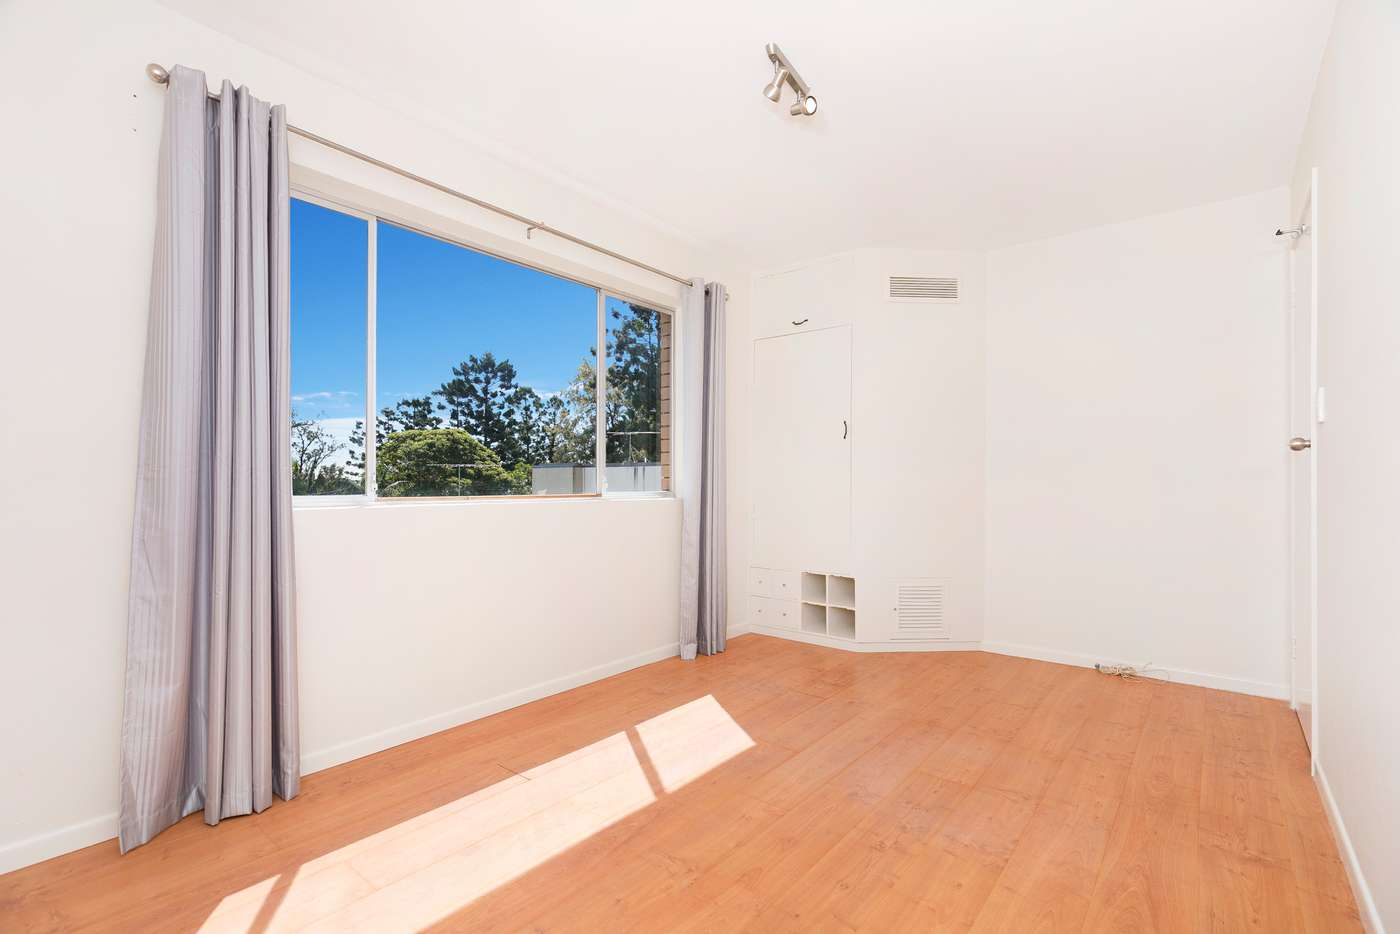 Sixth view of Homely apartment listing, 2/2 Prospect Terrace, Red Hill QLD 4059